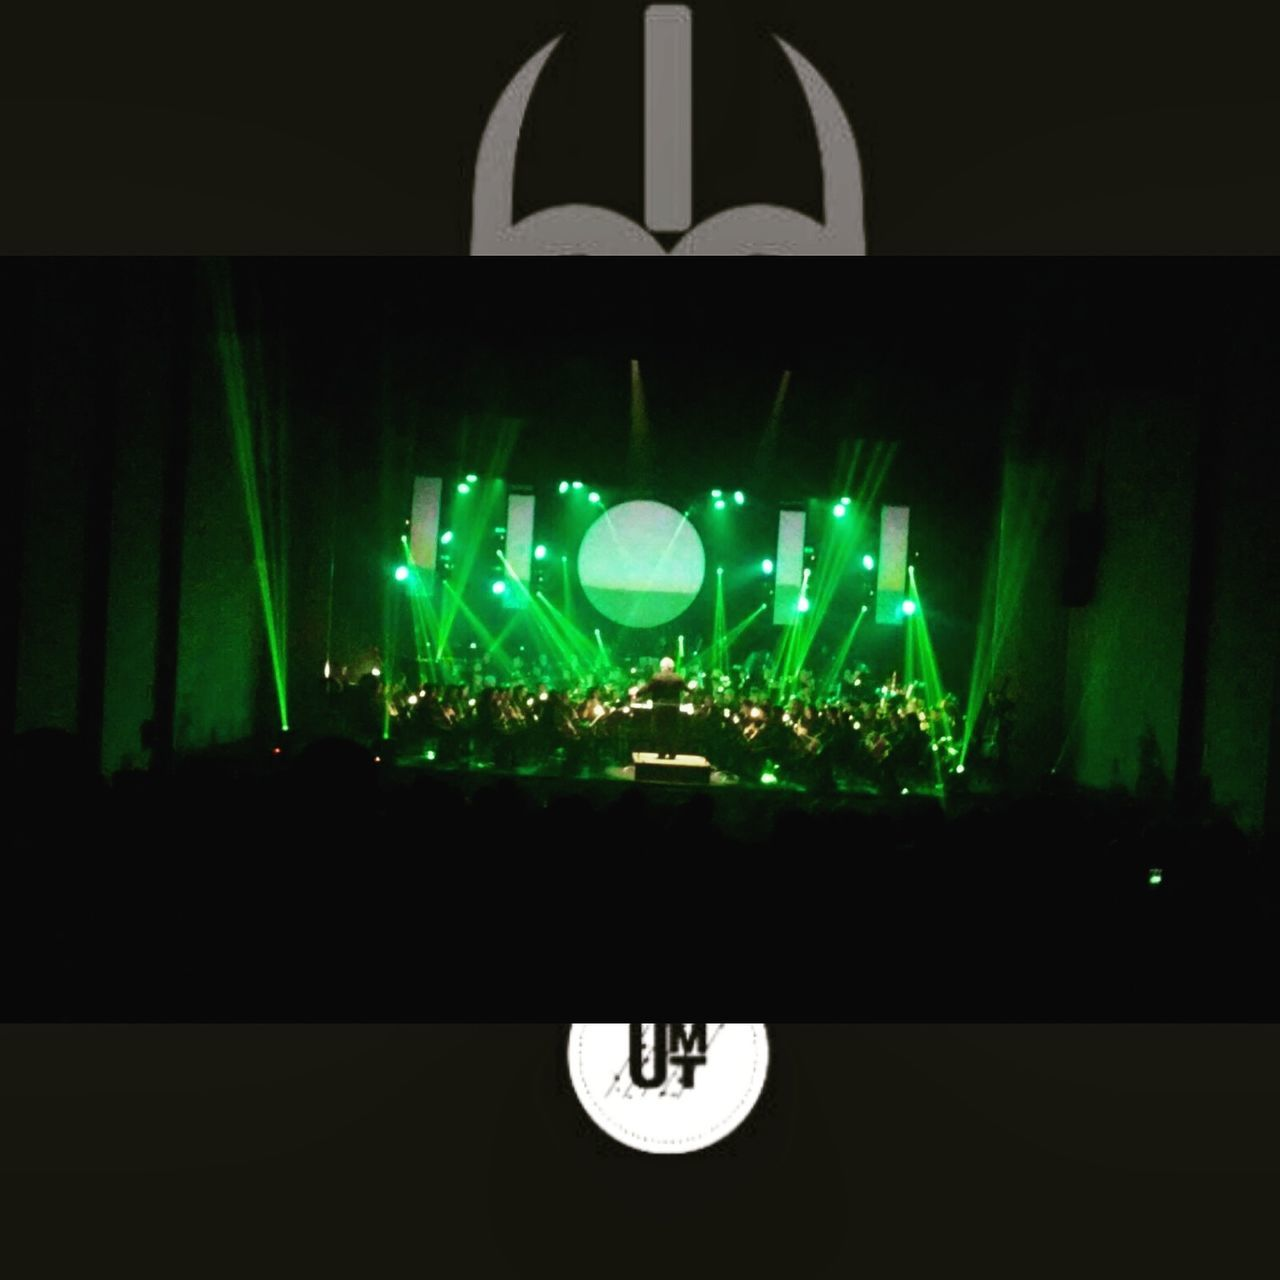 illuminated, lighting equipment, night, green color, arts culture and entertainment, stage light, real people, indoors